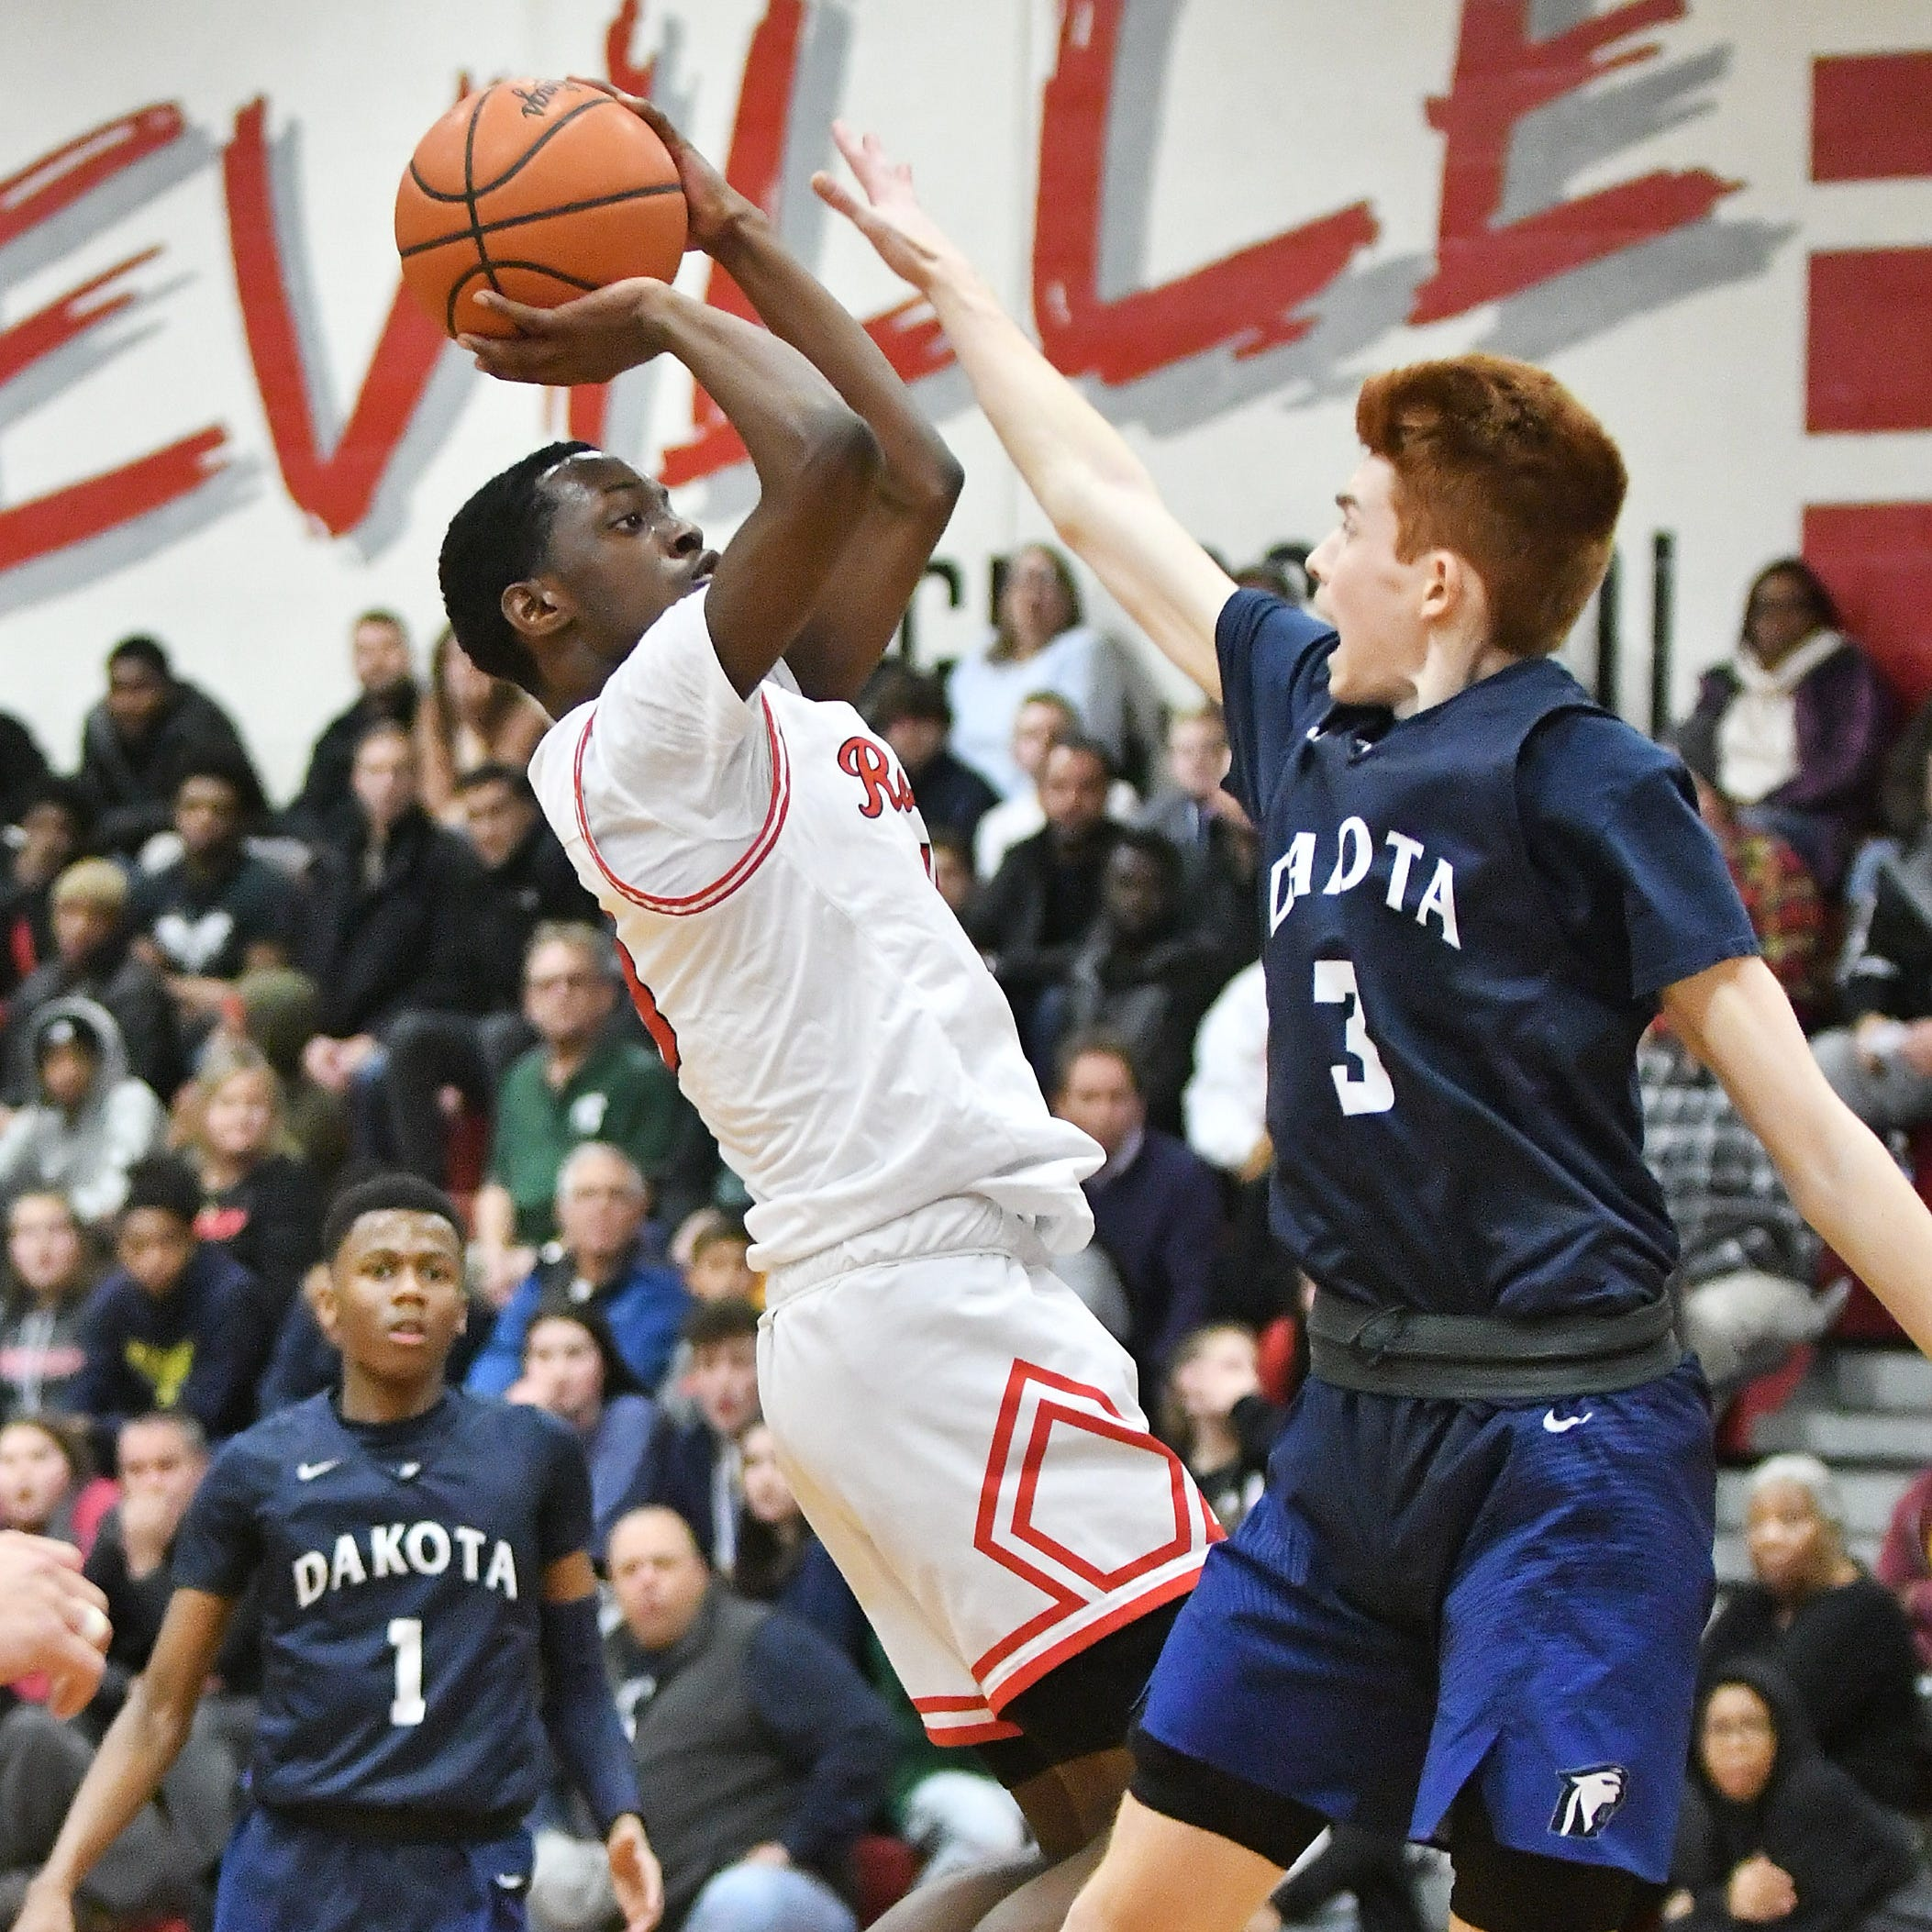 David Goricki's boys high school basketball rankings: Jan. 20